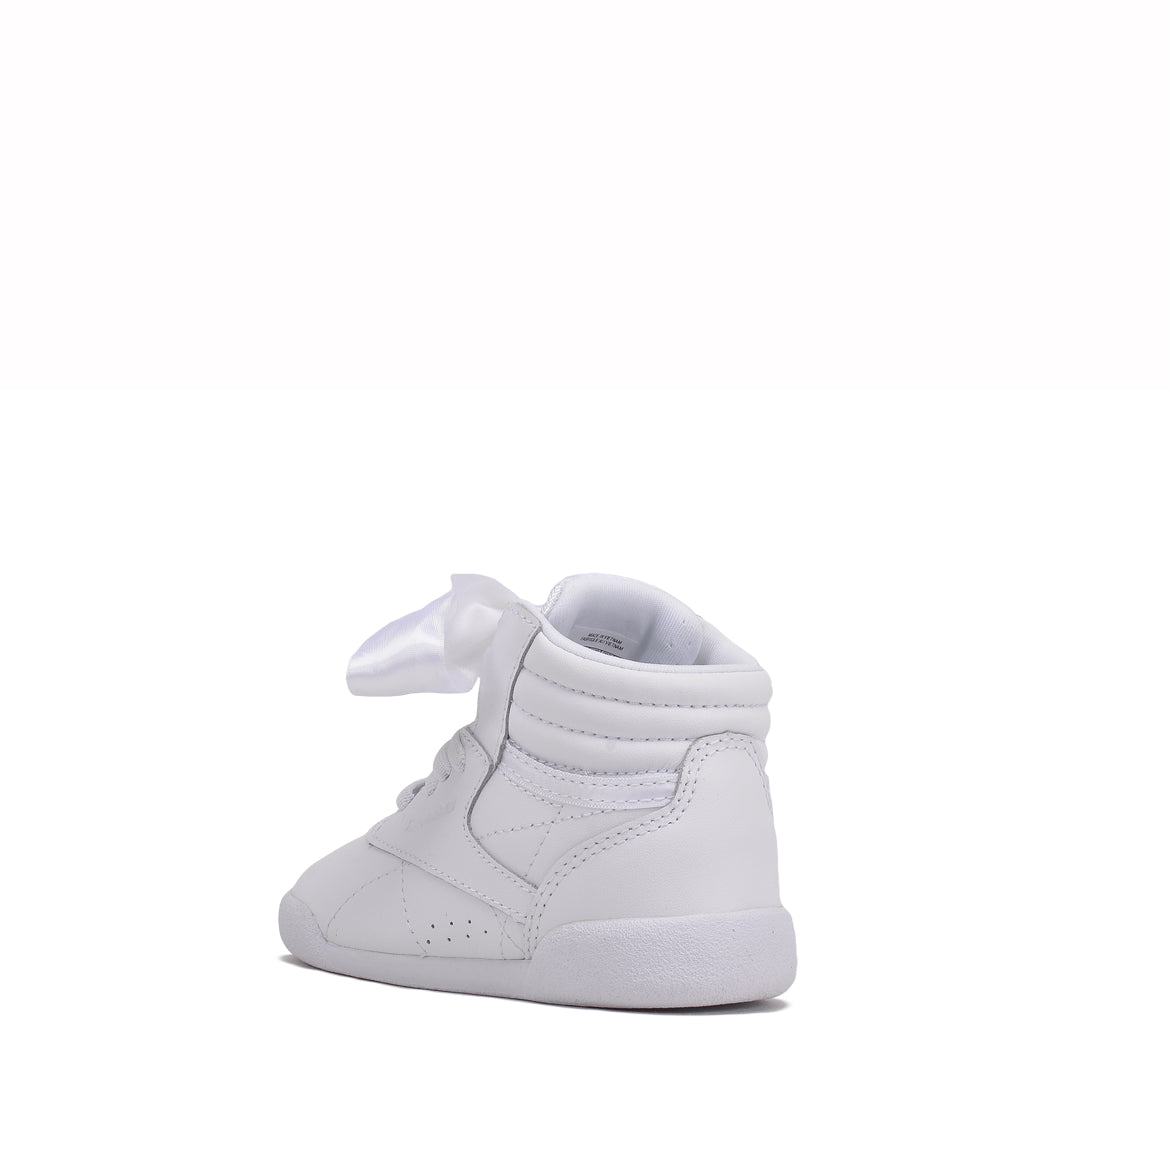 FREESTYLE HIGH SATIN BOW (TODDLER) - WHITE